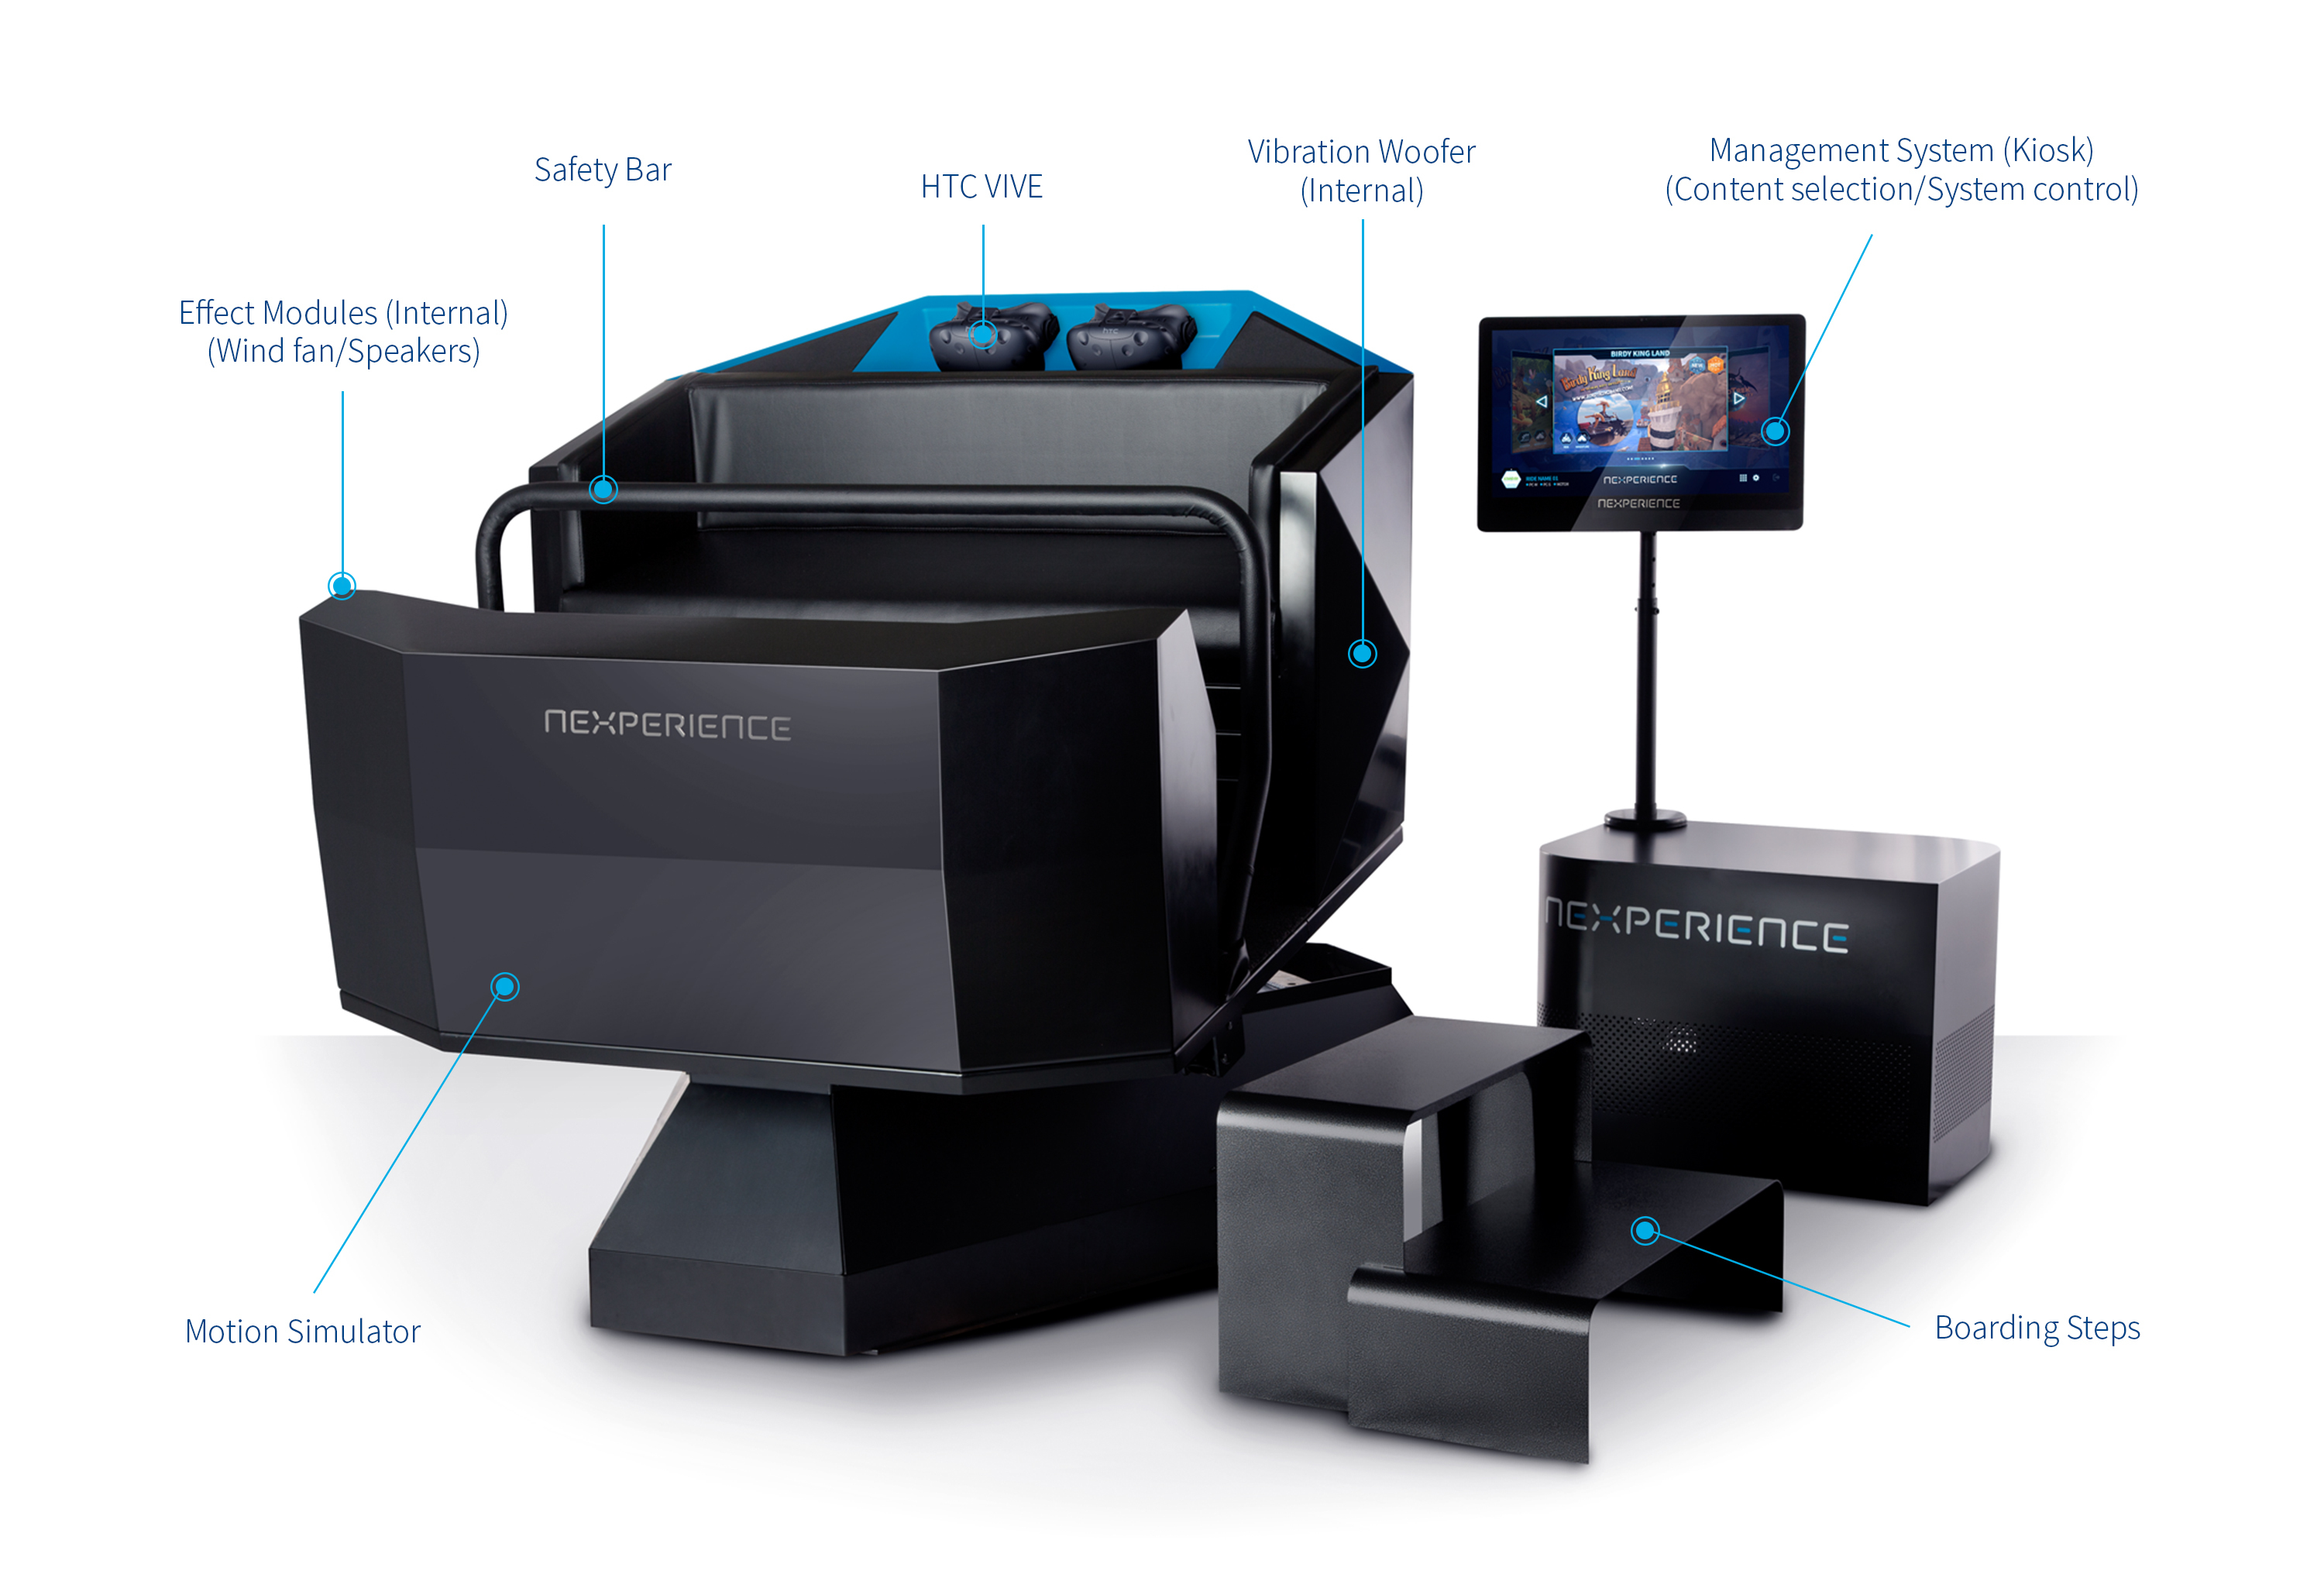 GOLFZON YUWON HOLDINGS will show 'NEXPERIENCE' at the Game Developers Conference 2017(GDC 2017). Being the virtual reality (VR) content platform brand of GOLFZON YUWON HOLDINGS, 'NEXPERIENCE' helps users have more real-life like experience with a variety of contents created by VR content developers through 'NEXPERIENCE' platform and motion simulator. 'NEXPERIENCE' is advantageous in that it allows users to use contents created by a range of developers and it can interwork with video-based VR content. Image is VR management system Kiosk and its motion simulator. (Graphic: Business Wire)